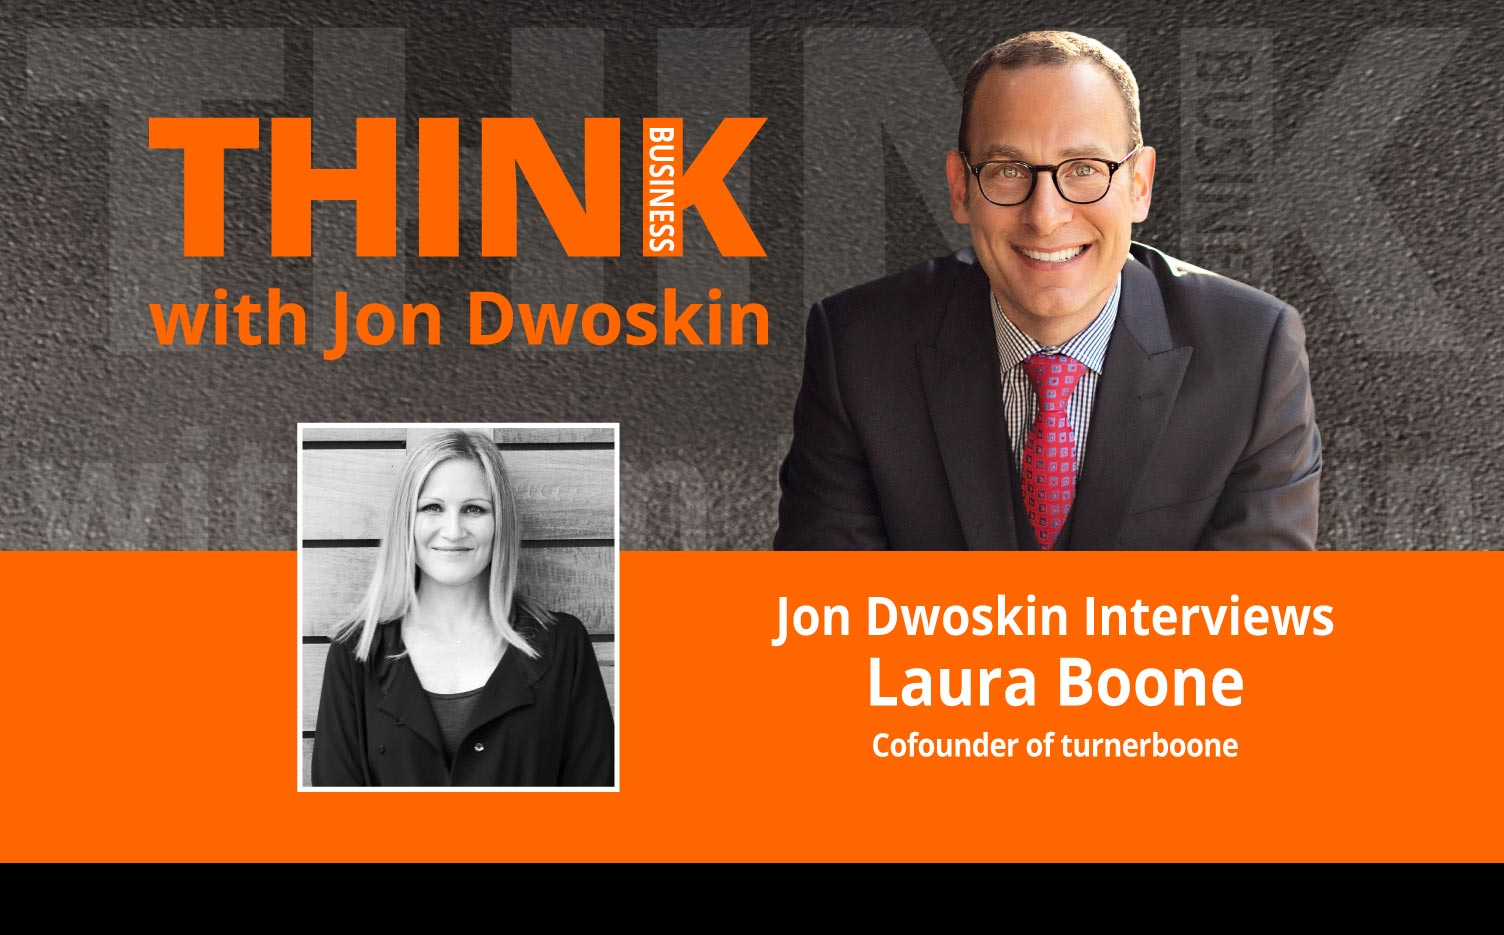 Jon Dwoskin Interviews Laura Boone, Cofounder of turnerboone